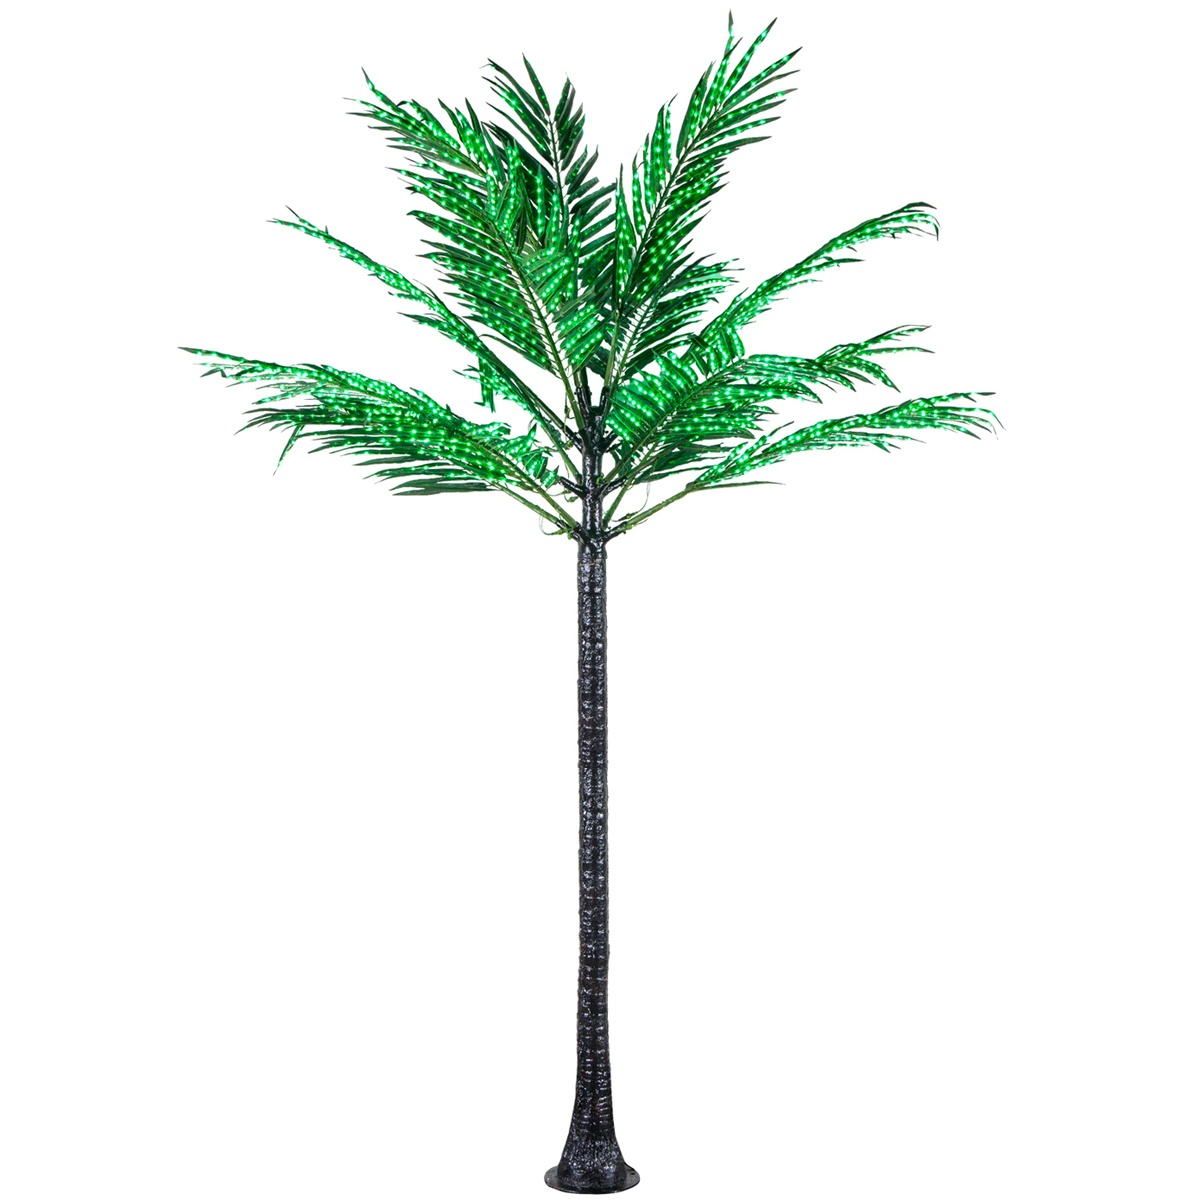 15 Tree Of Lights Tree C7: 15' LED Deluxe Commercial Lighted